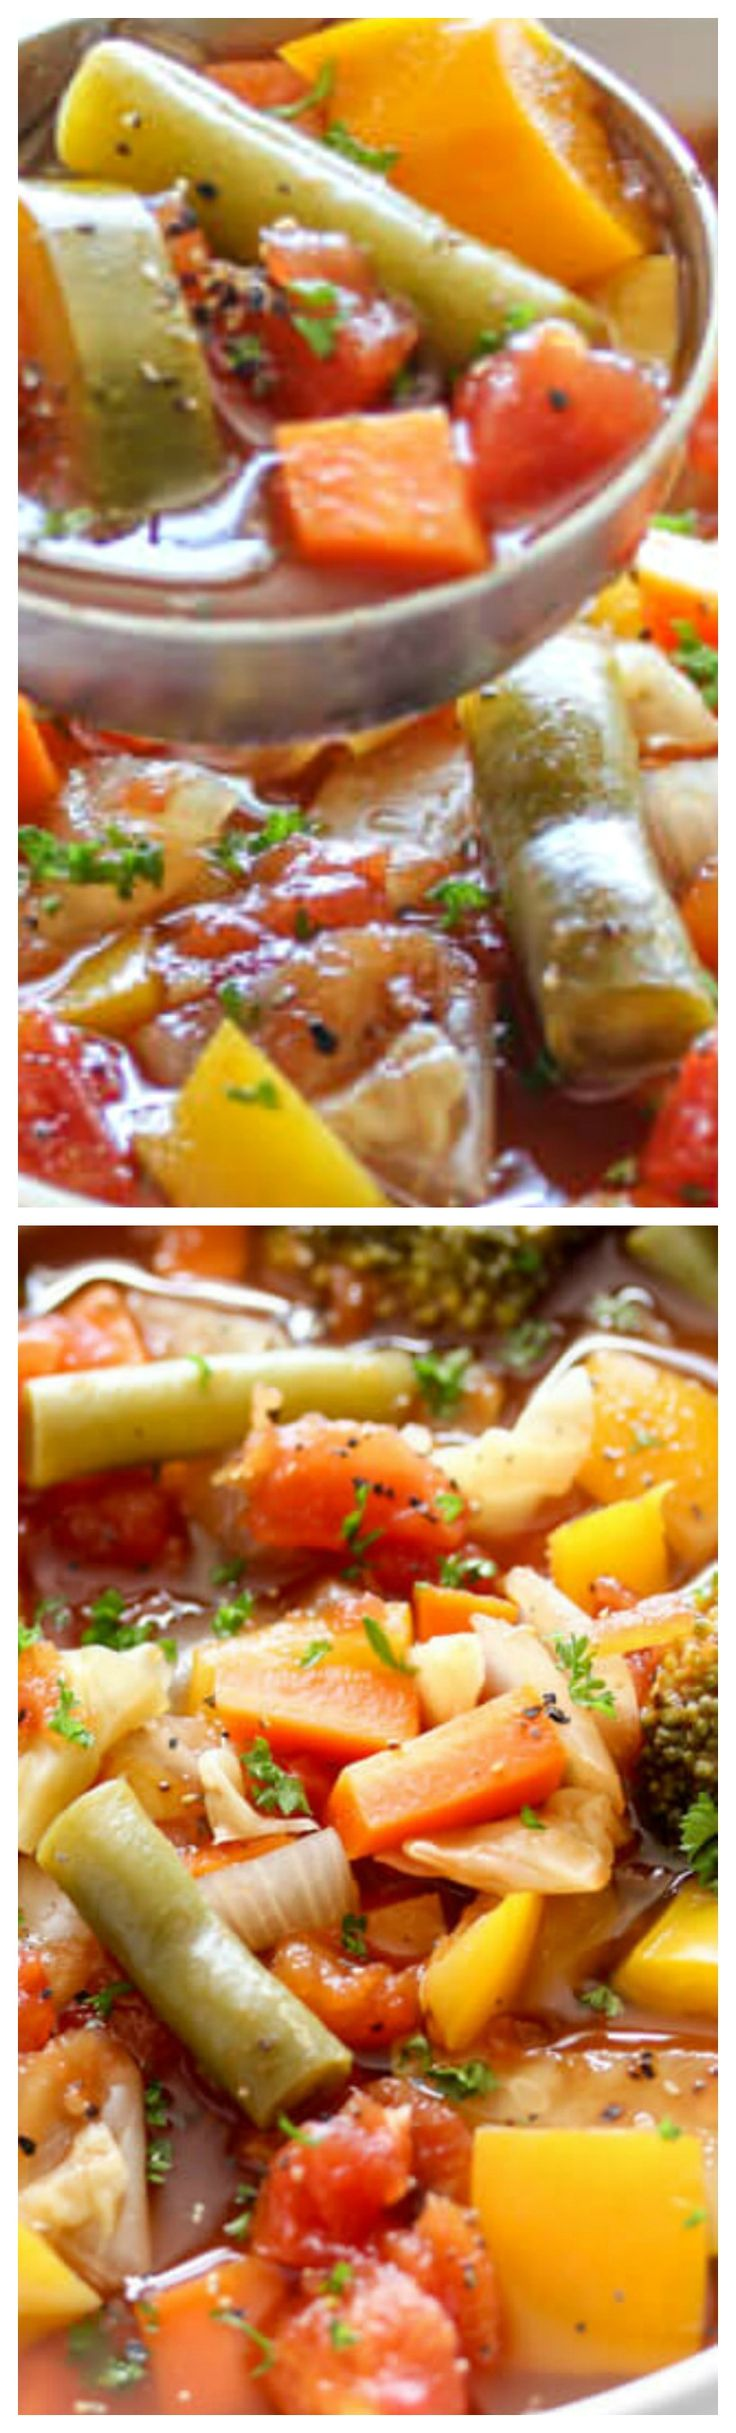 Weight Loss Vegetable Soup This Weight Loss Vegetable Soup Recipe is one of our favorites! Completely loaded with veggies and flavor and naturally low in fat and calories it's the perfect lunch, snack or starter!